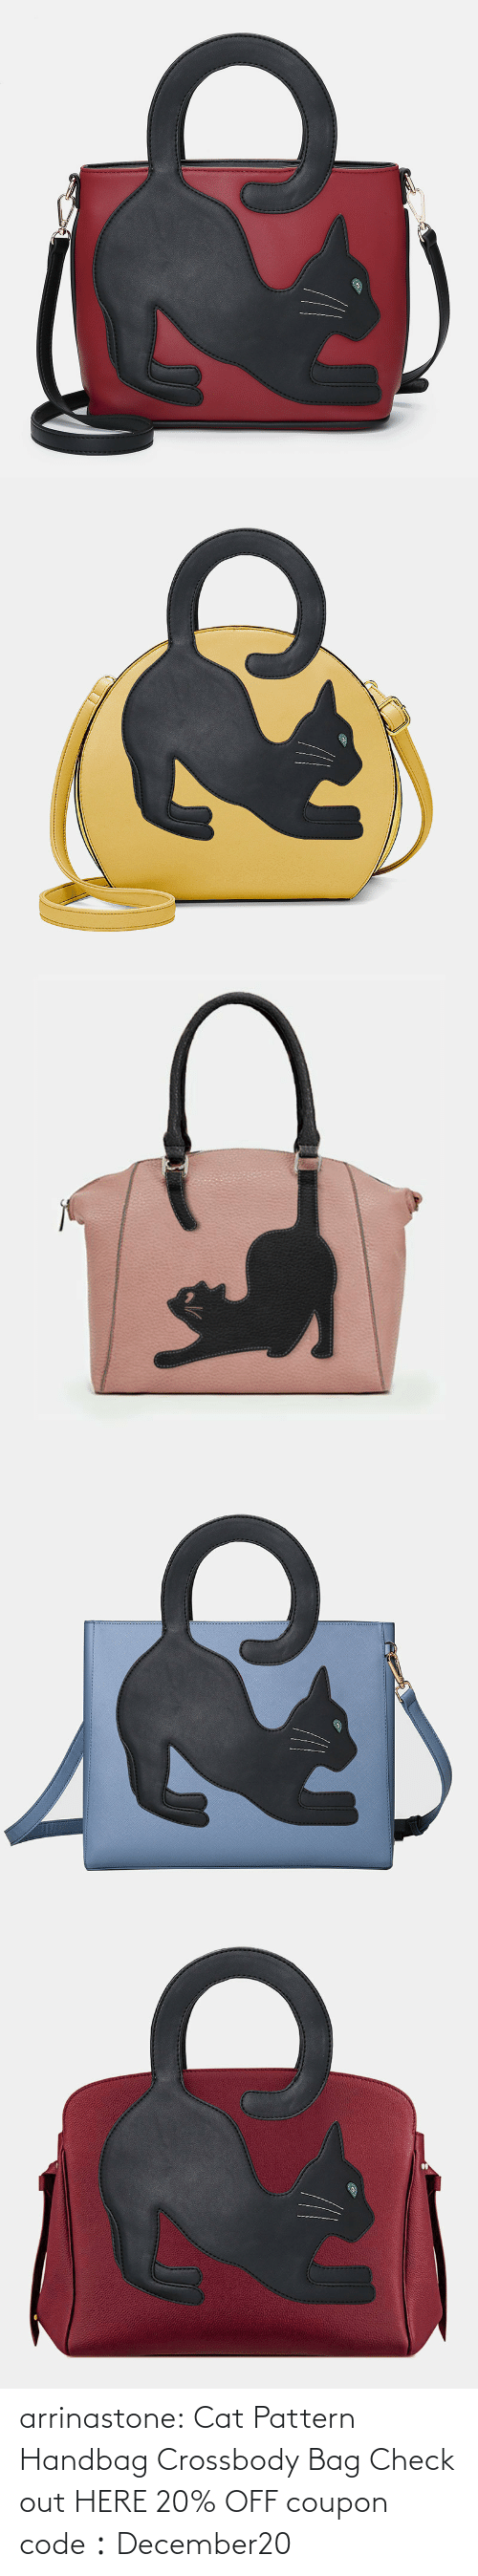 bag: arrinastone: Cat Pattern Handbag Crossbody Bag Check out HERE 20% OFF coupon code:December20